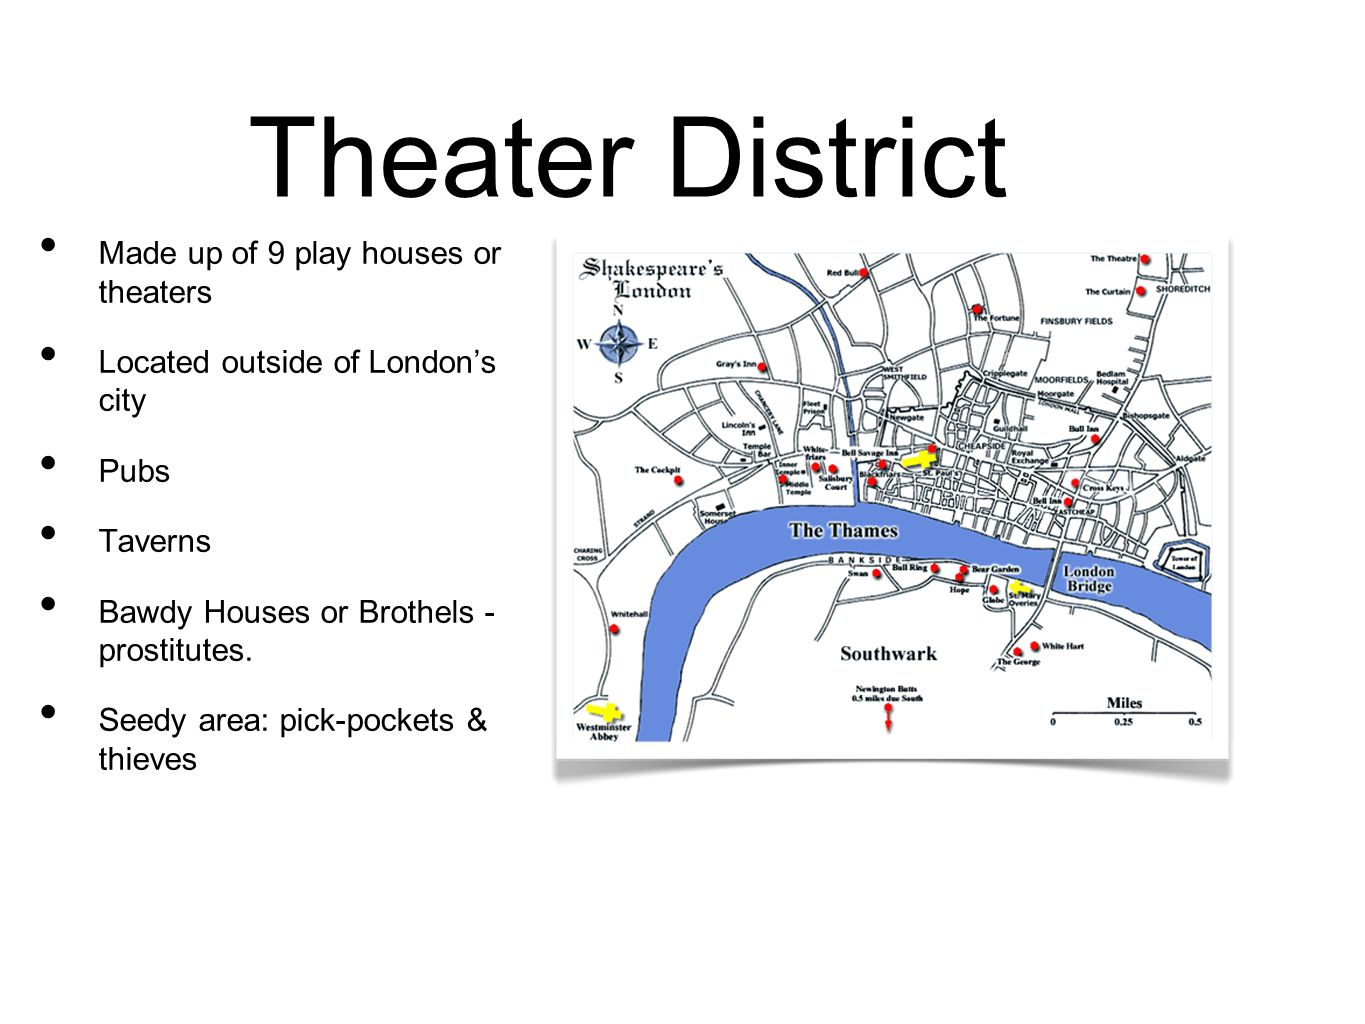 Theater District Made up of 9 play houses or theaters